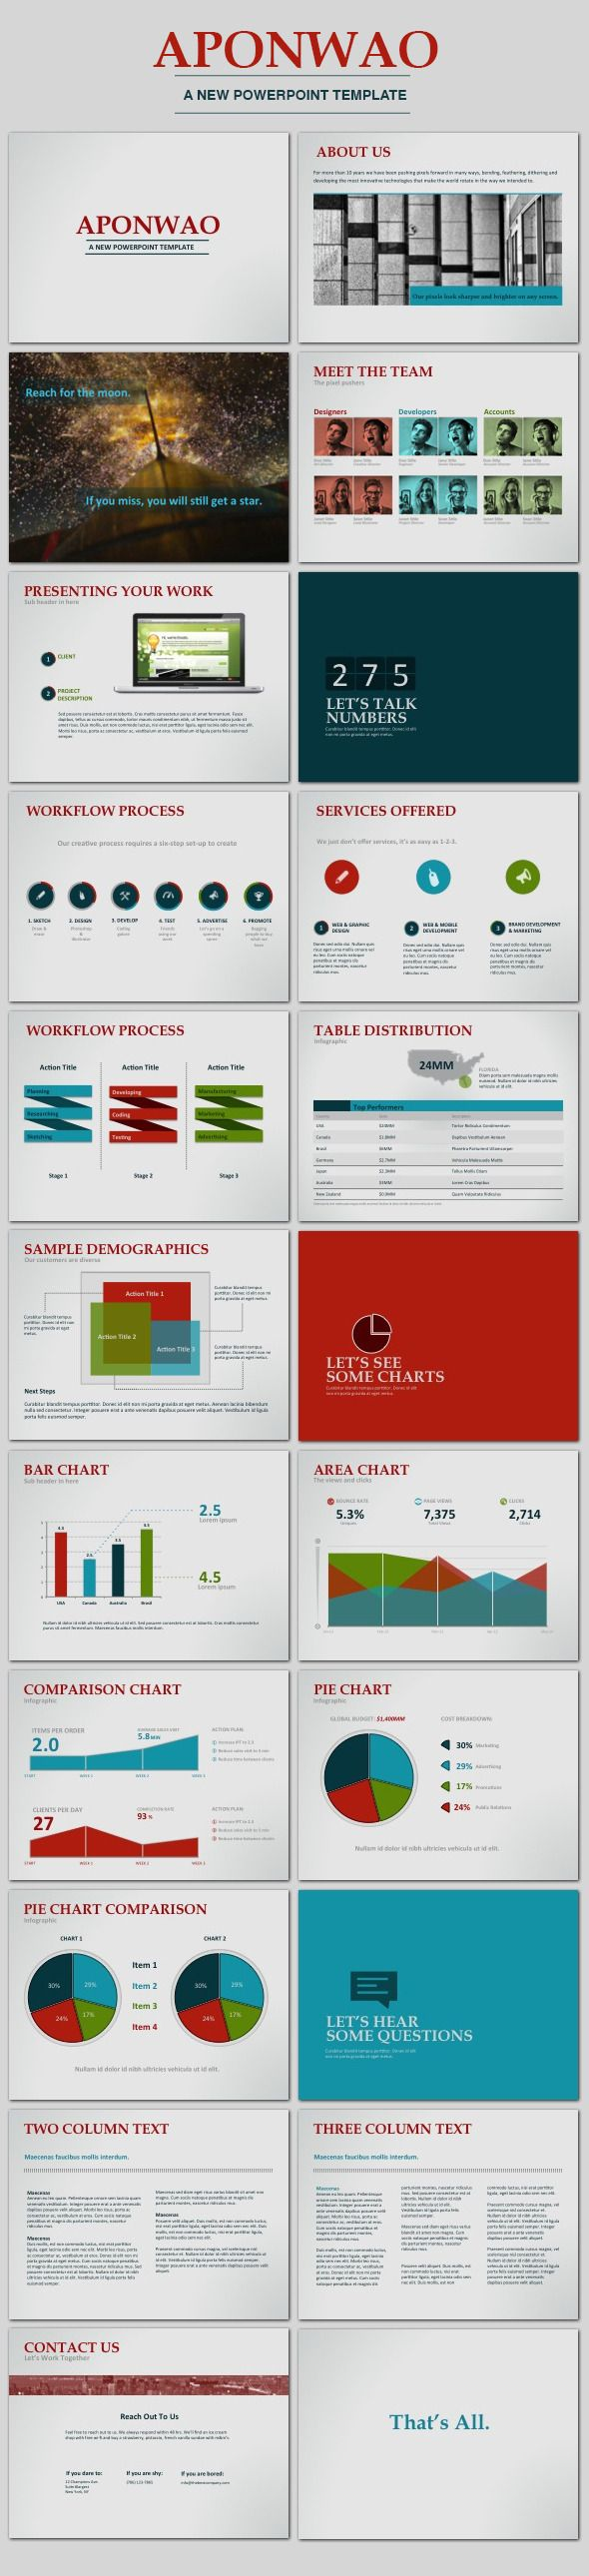 14 best powerpoint images on pinterest ppt design presentation aponwao powerpoint template alramifo Images